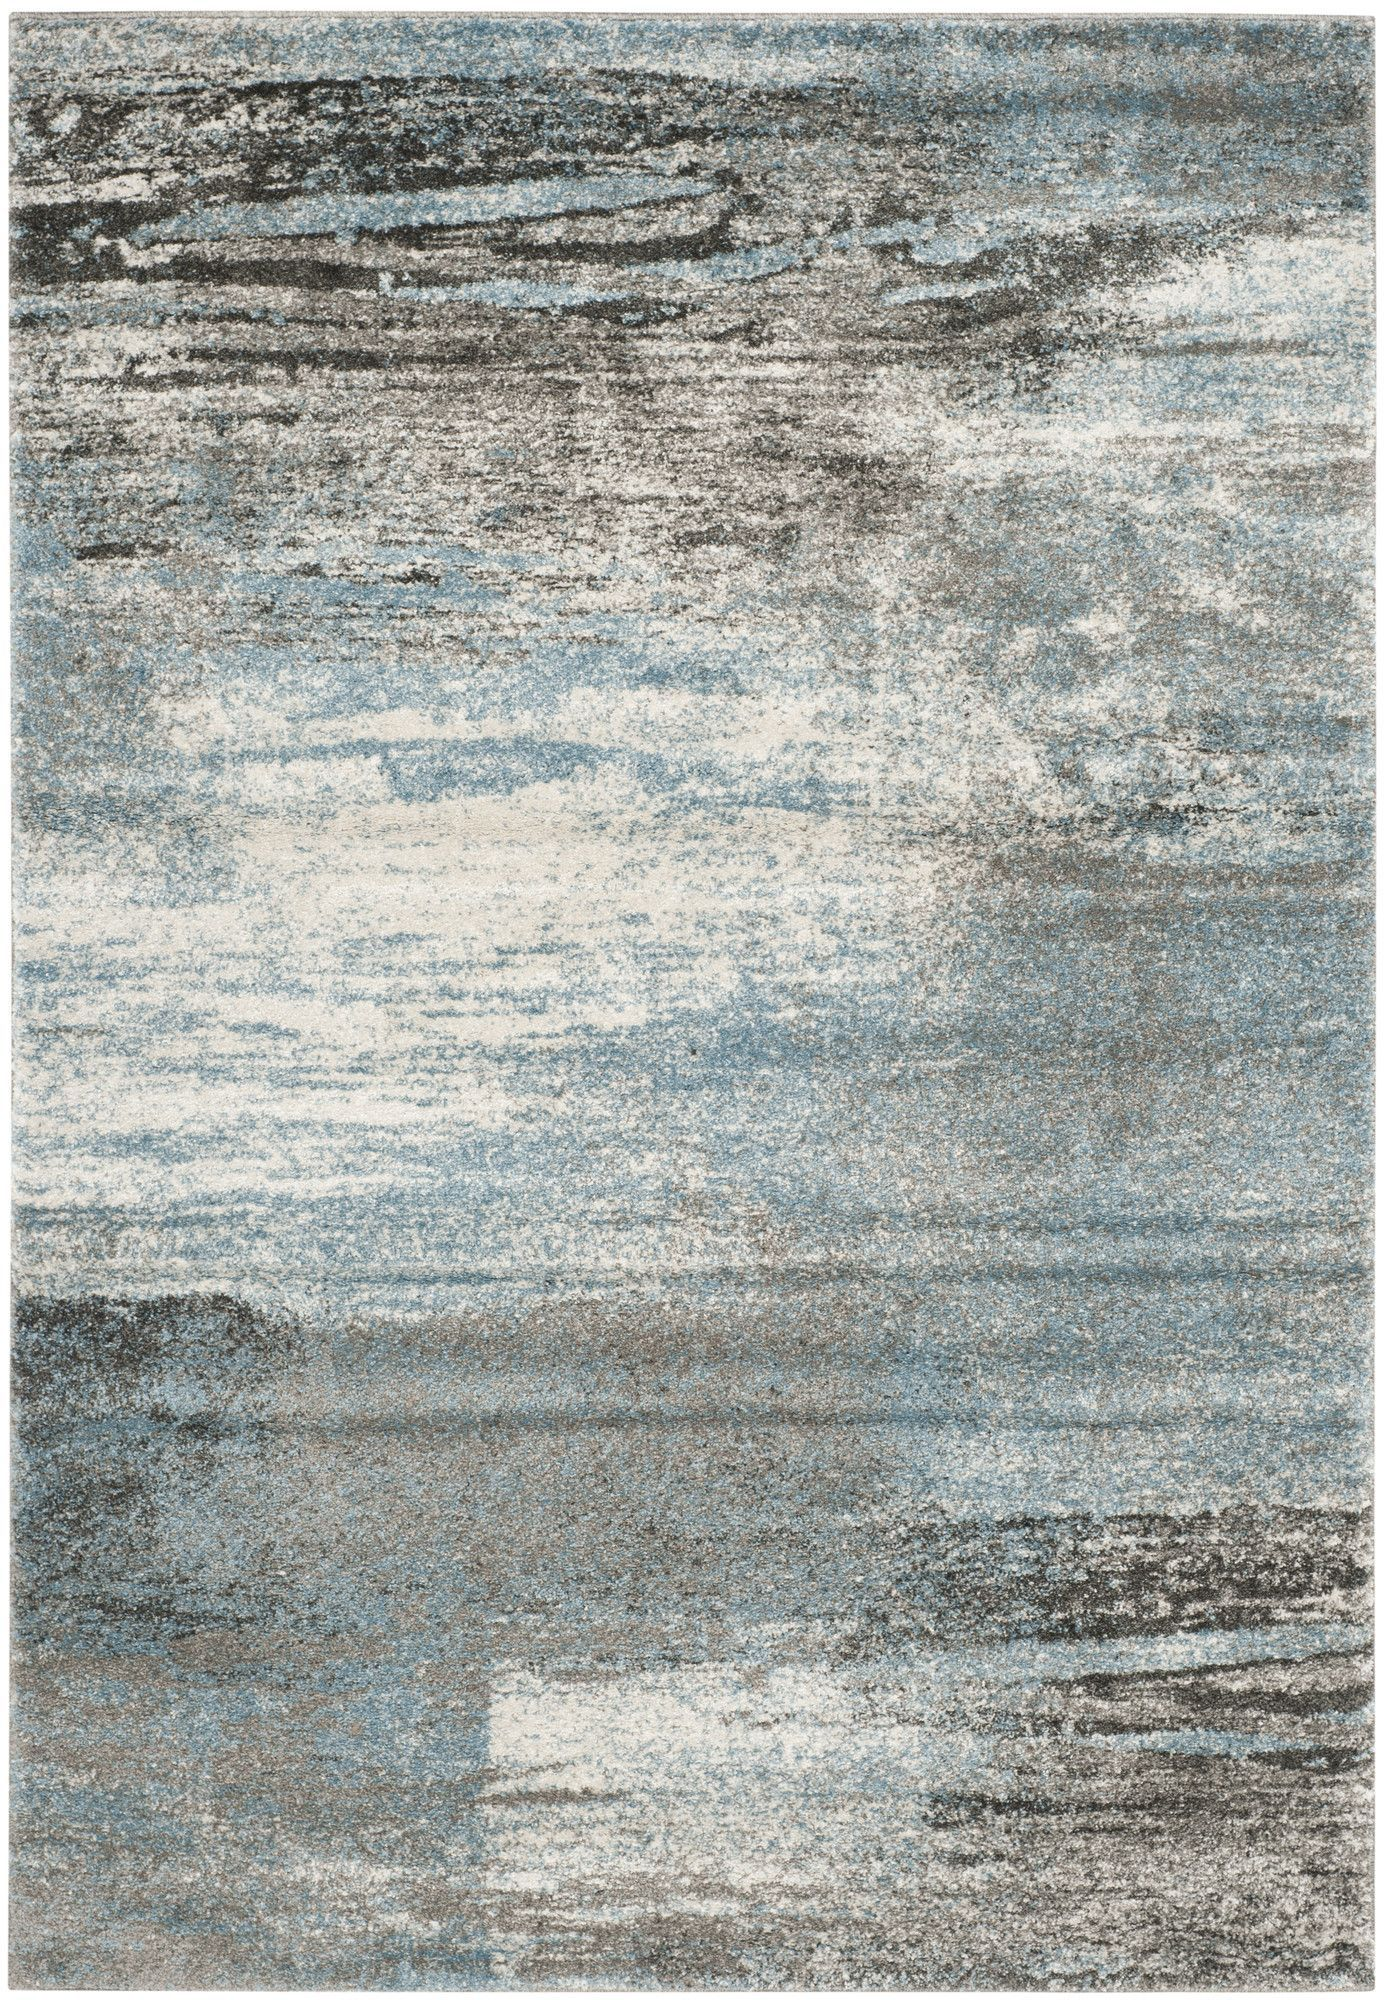 Tahoe Gray Light Blue Area Rug Light Blue Rug Textured Carpet Blue Grey Rug